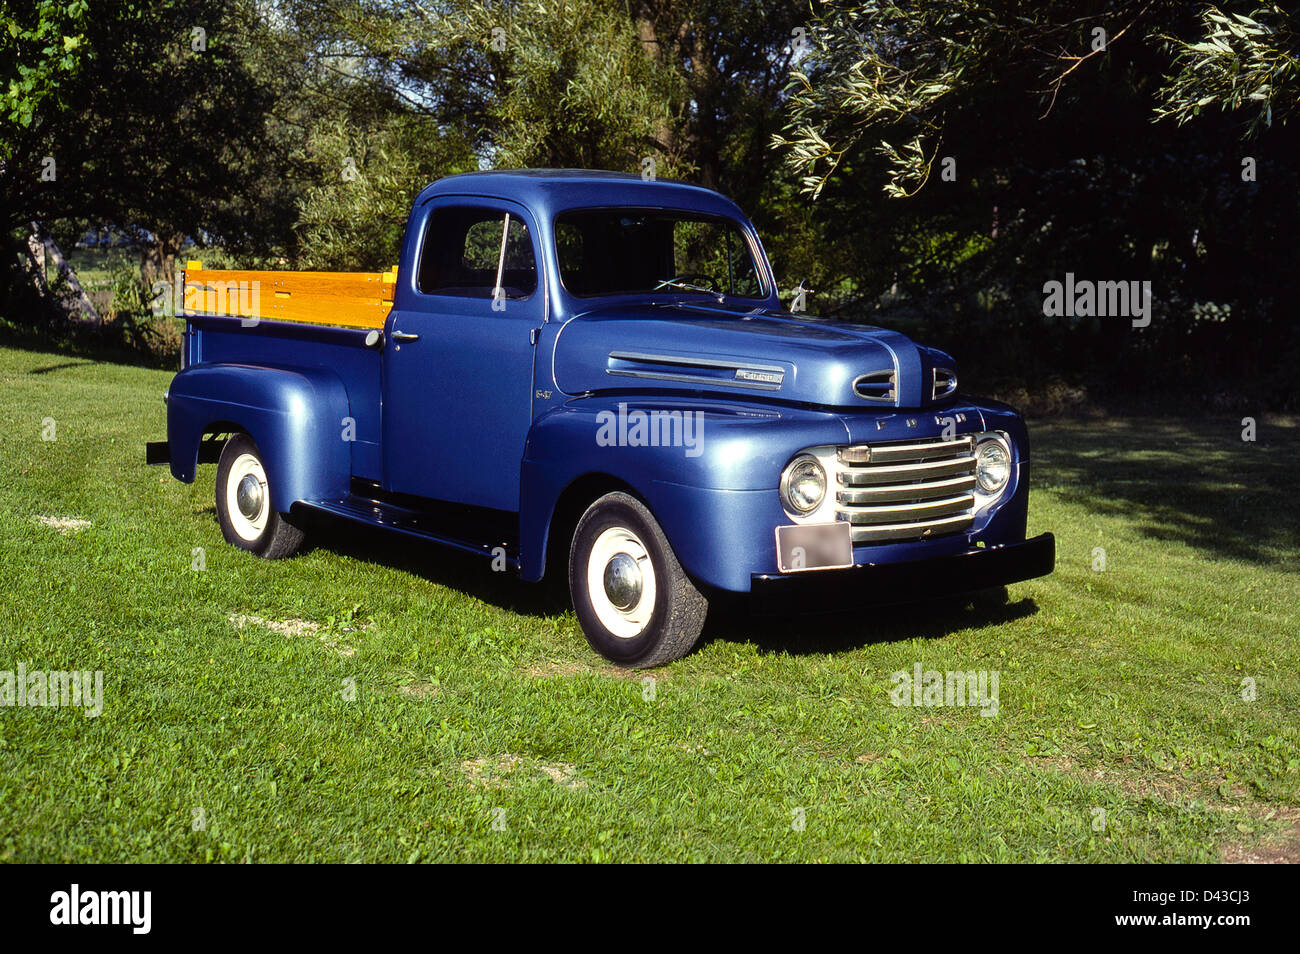 1950 ford 1 2 ton pick up truck stock photo royalty free image 54165499 alamy. Black Bedroom Furniture Sets. Home Design Ideas